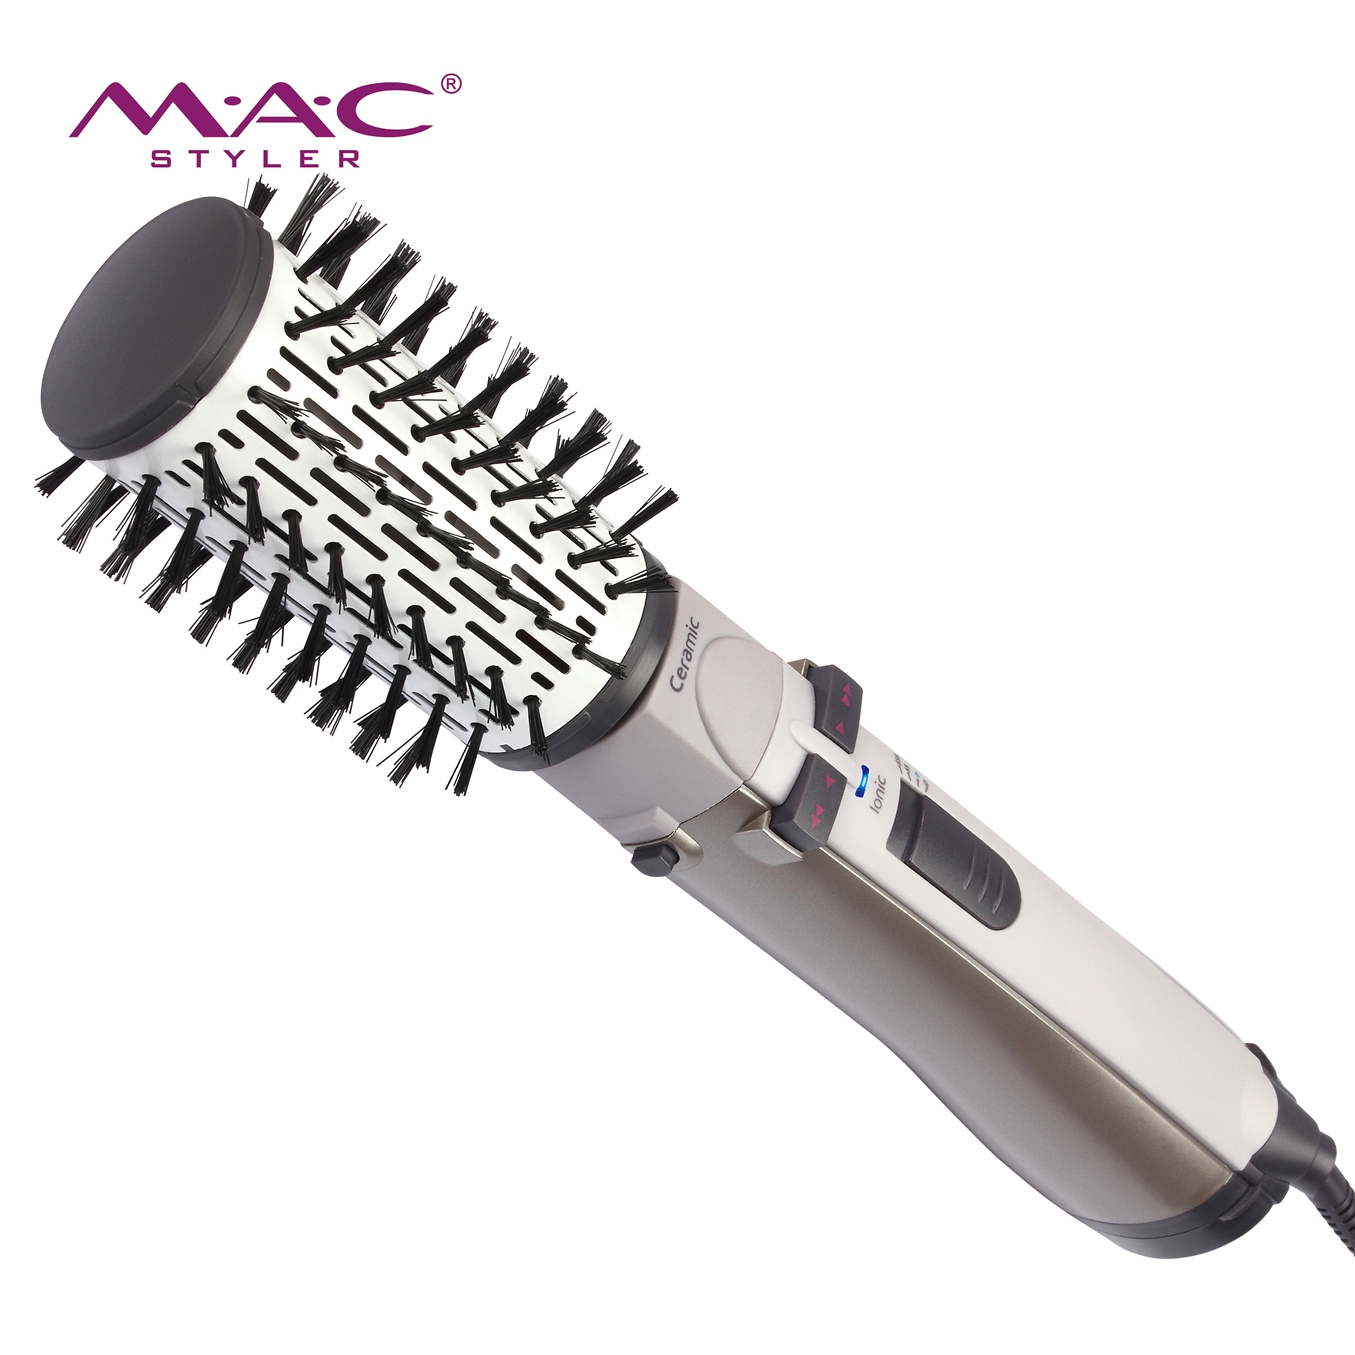 5 In 1 Hair Brush Professional Brush Straightening Comb Hair Tool Straightener With Removable Comb Heat Brush